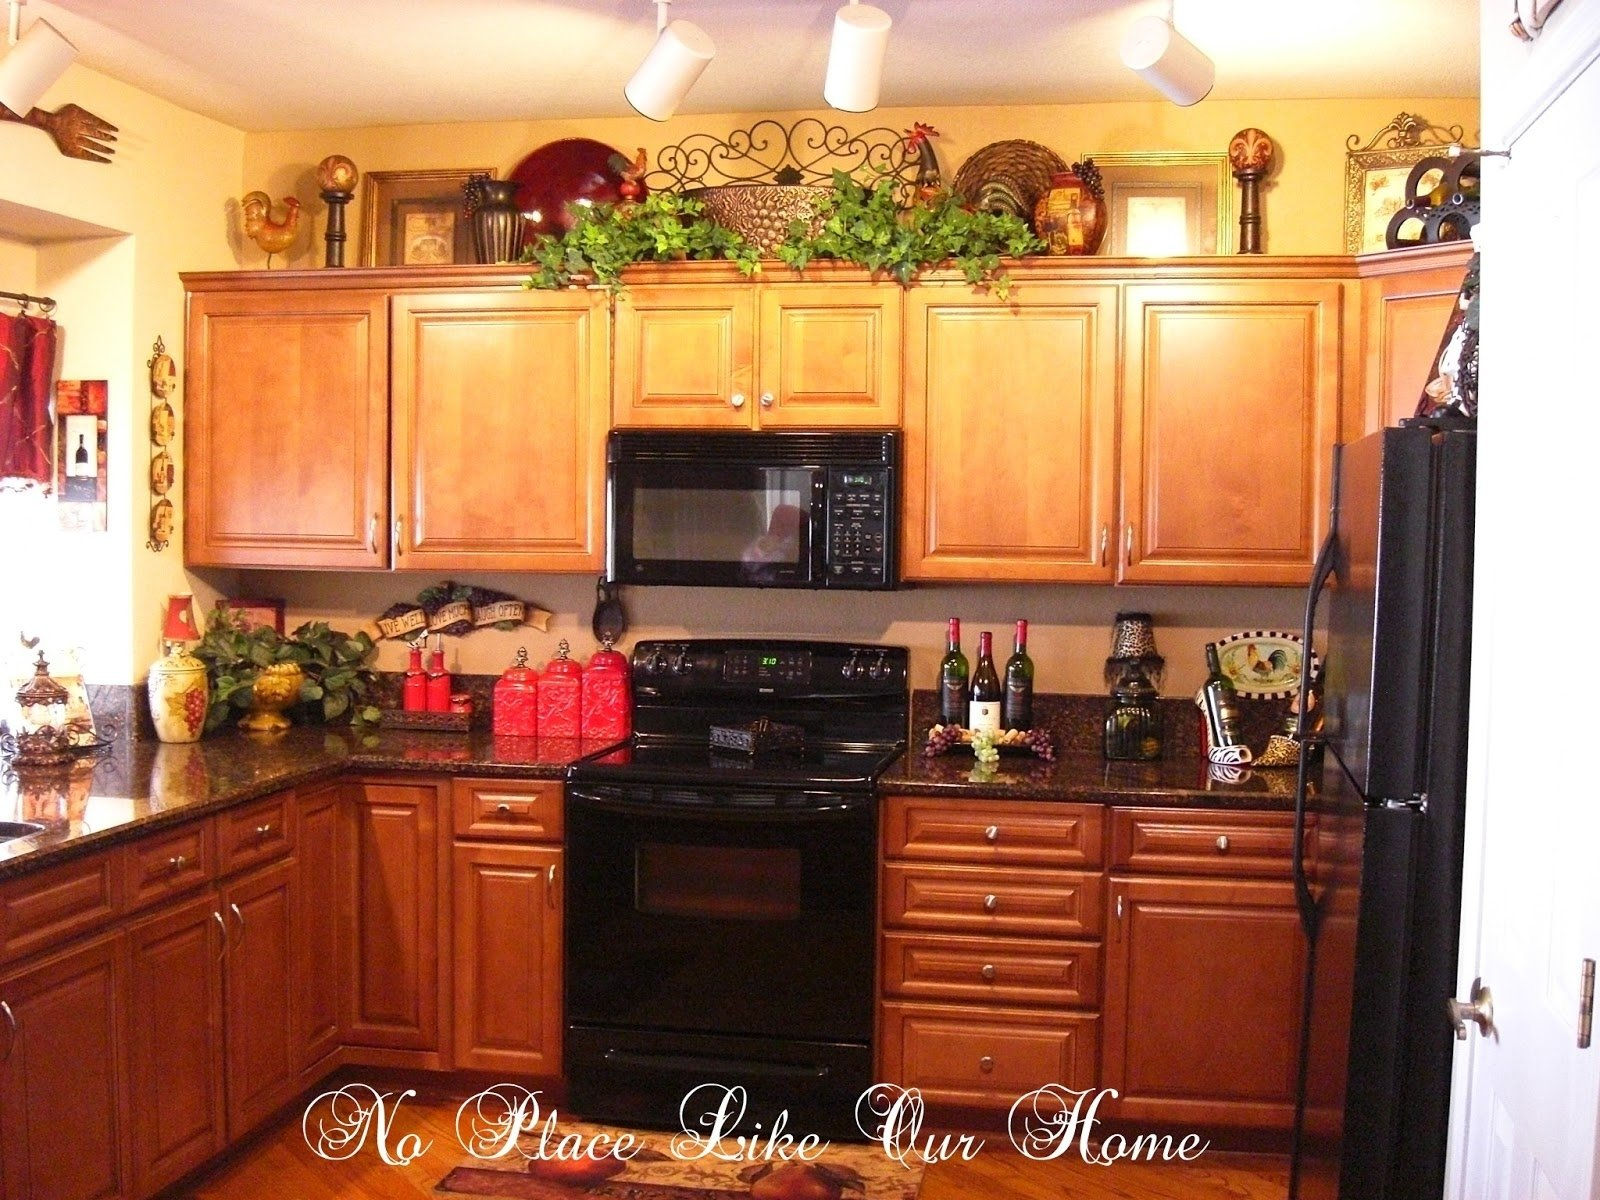 10 Fabulous Ideas For Above Kitchen Cabinets decorating ideas for above kitchen cabinets a bunch of ideas for 1 2020